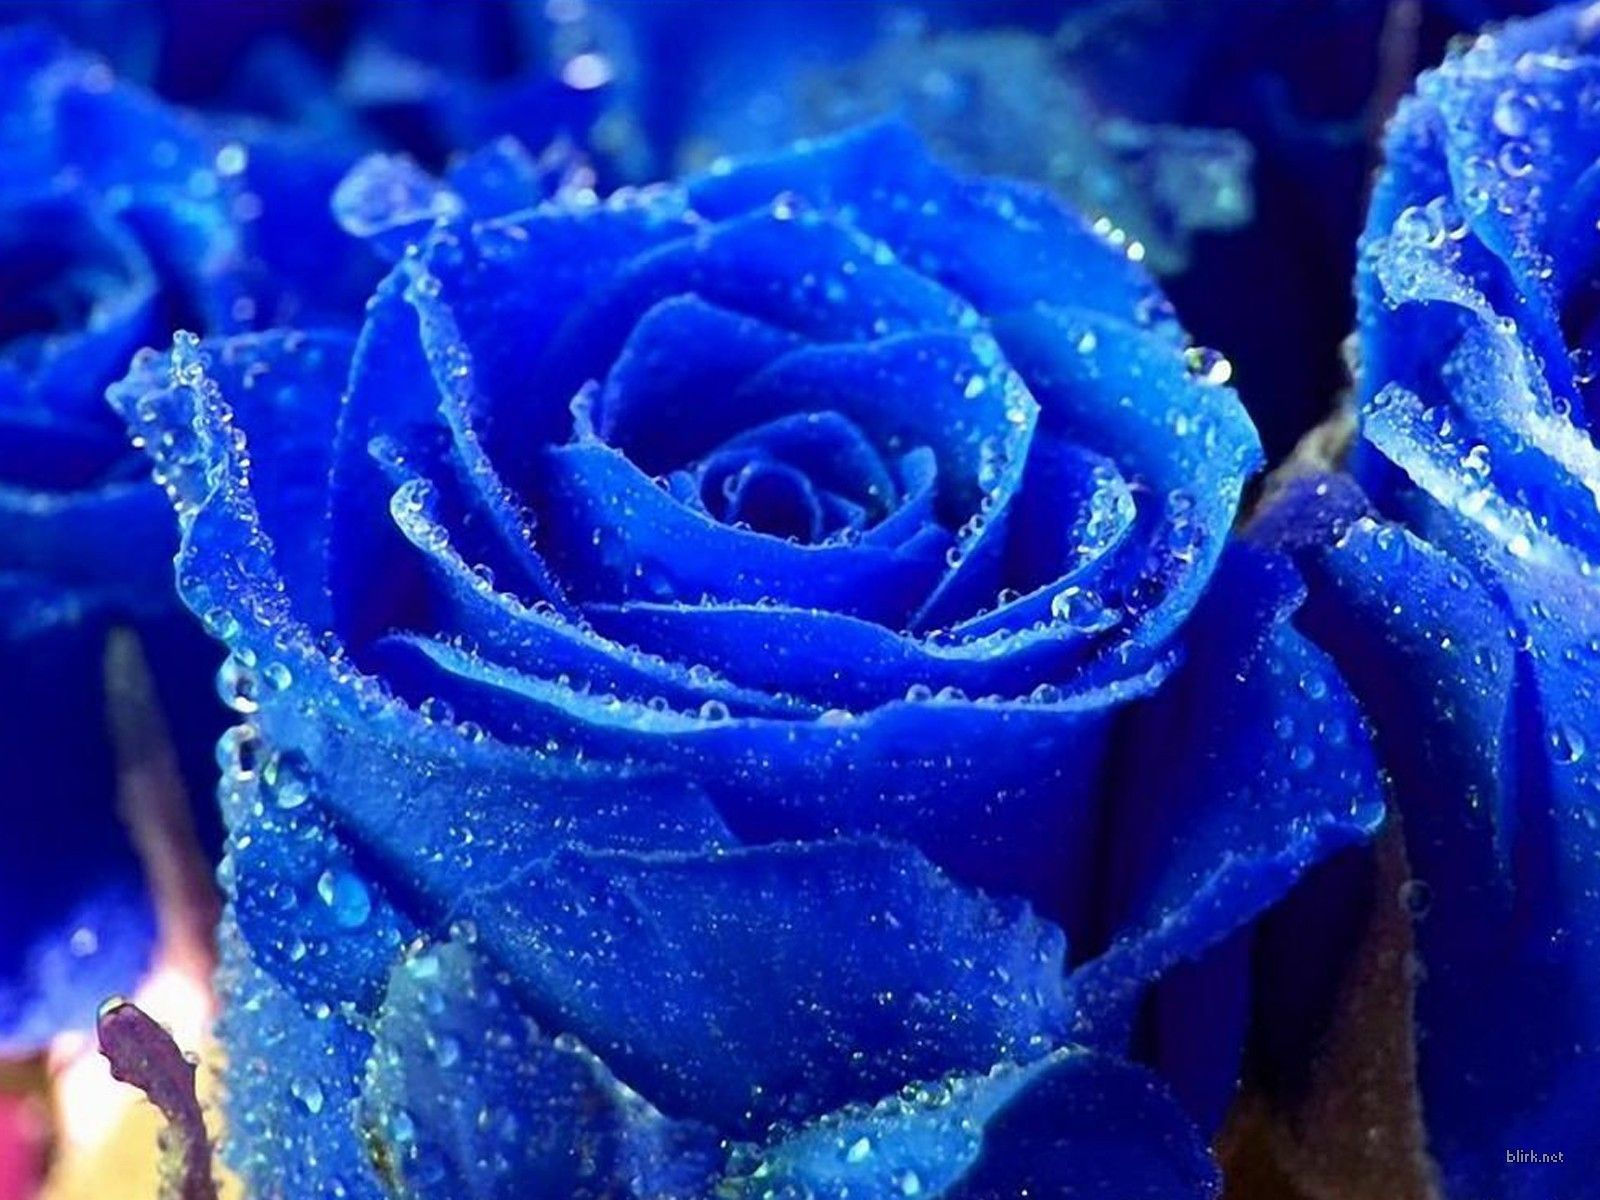 Royal Blue Flowers HD Wallpapers - Top Free Royal Blue Flowers HD